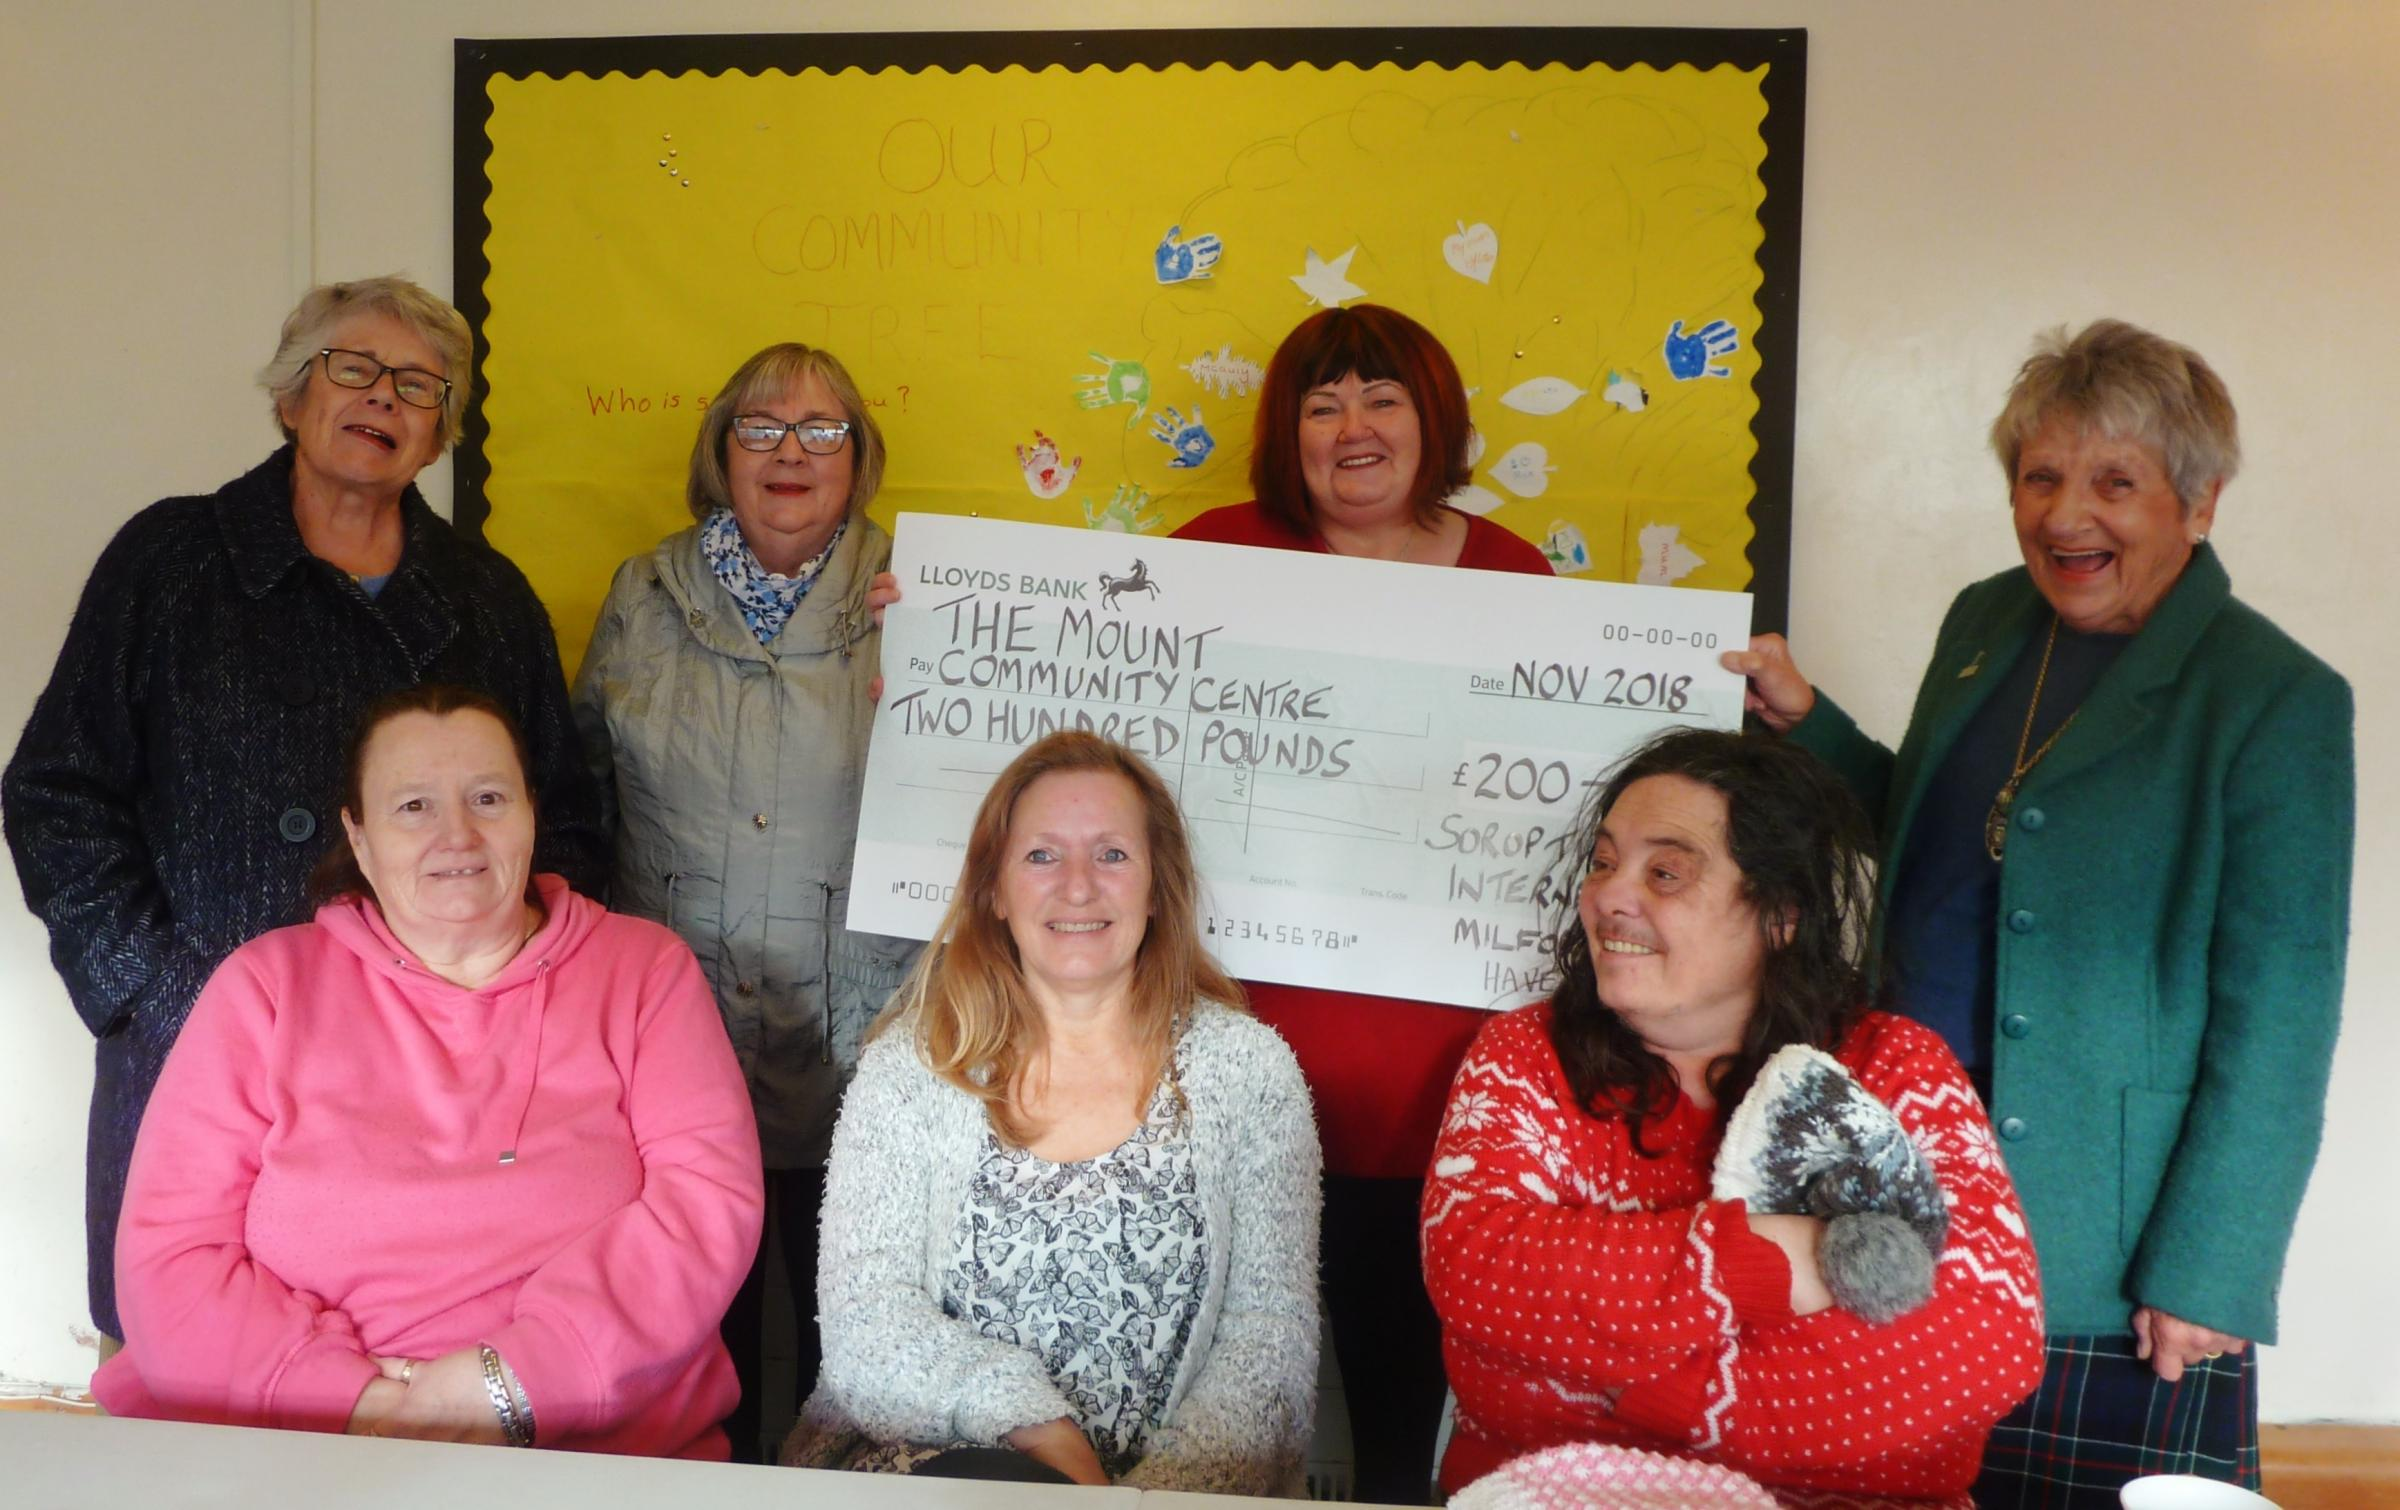 SI President Sarah Colquhoun is pictured presenting the cheque to charity trustee Lynne Turner, with members of SI Milford Haven and residents of the Mount estate.